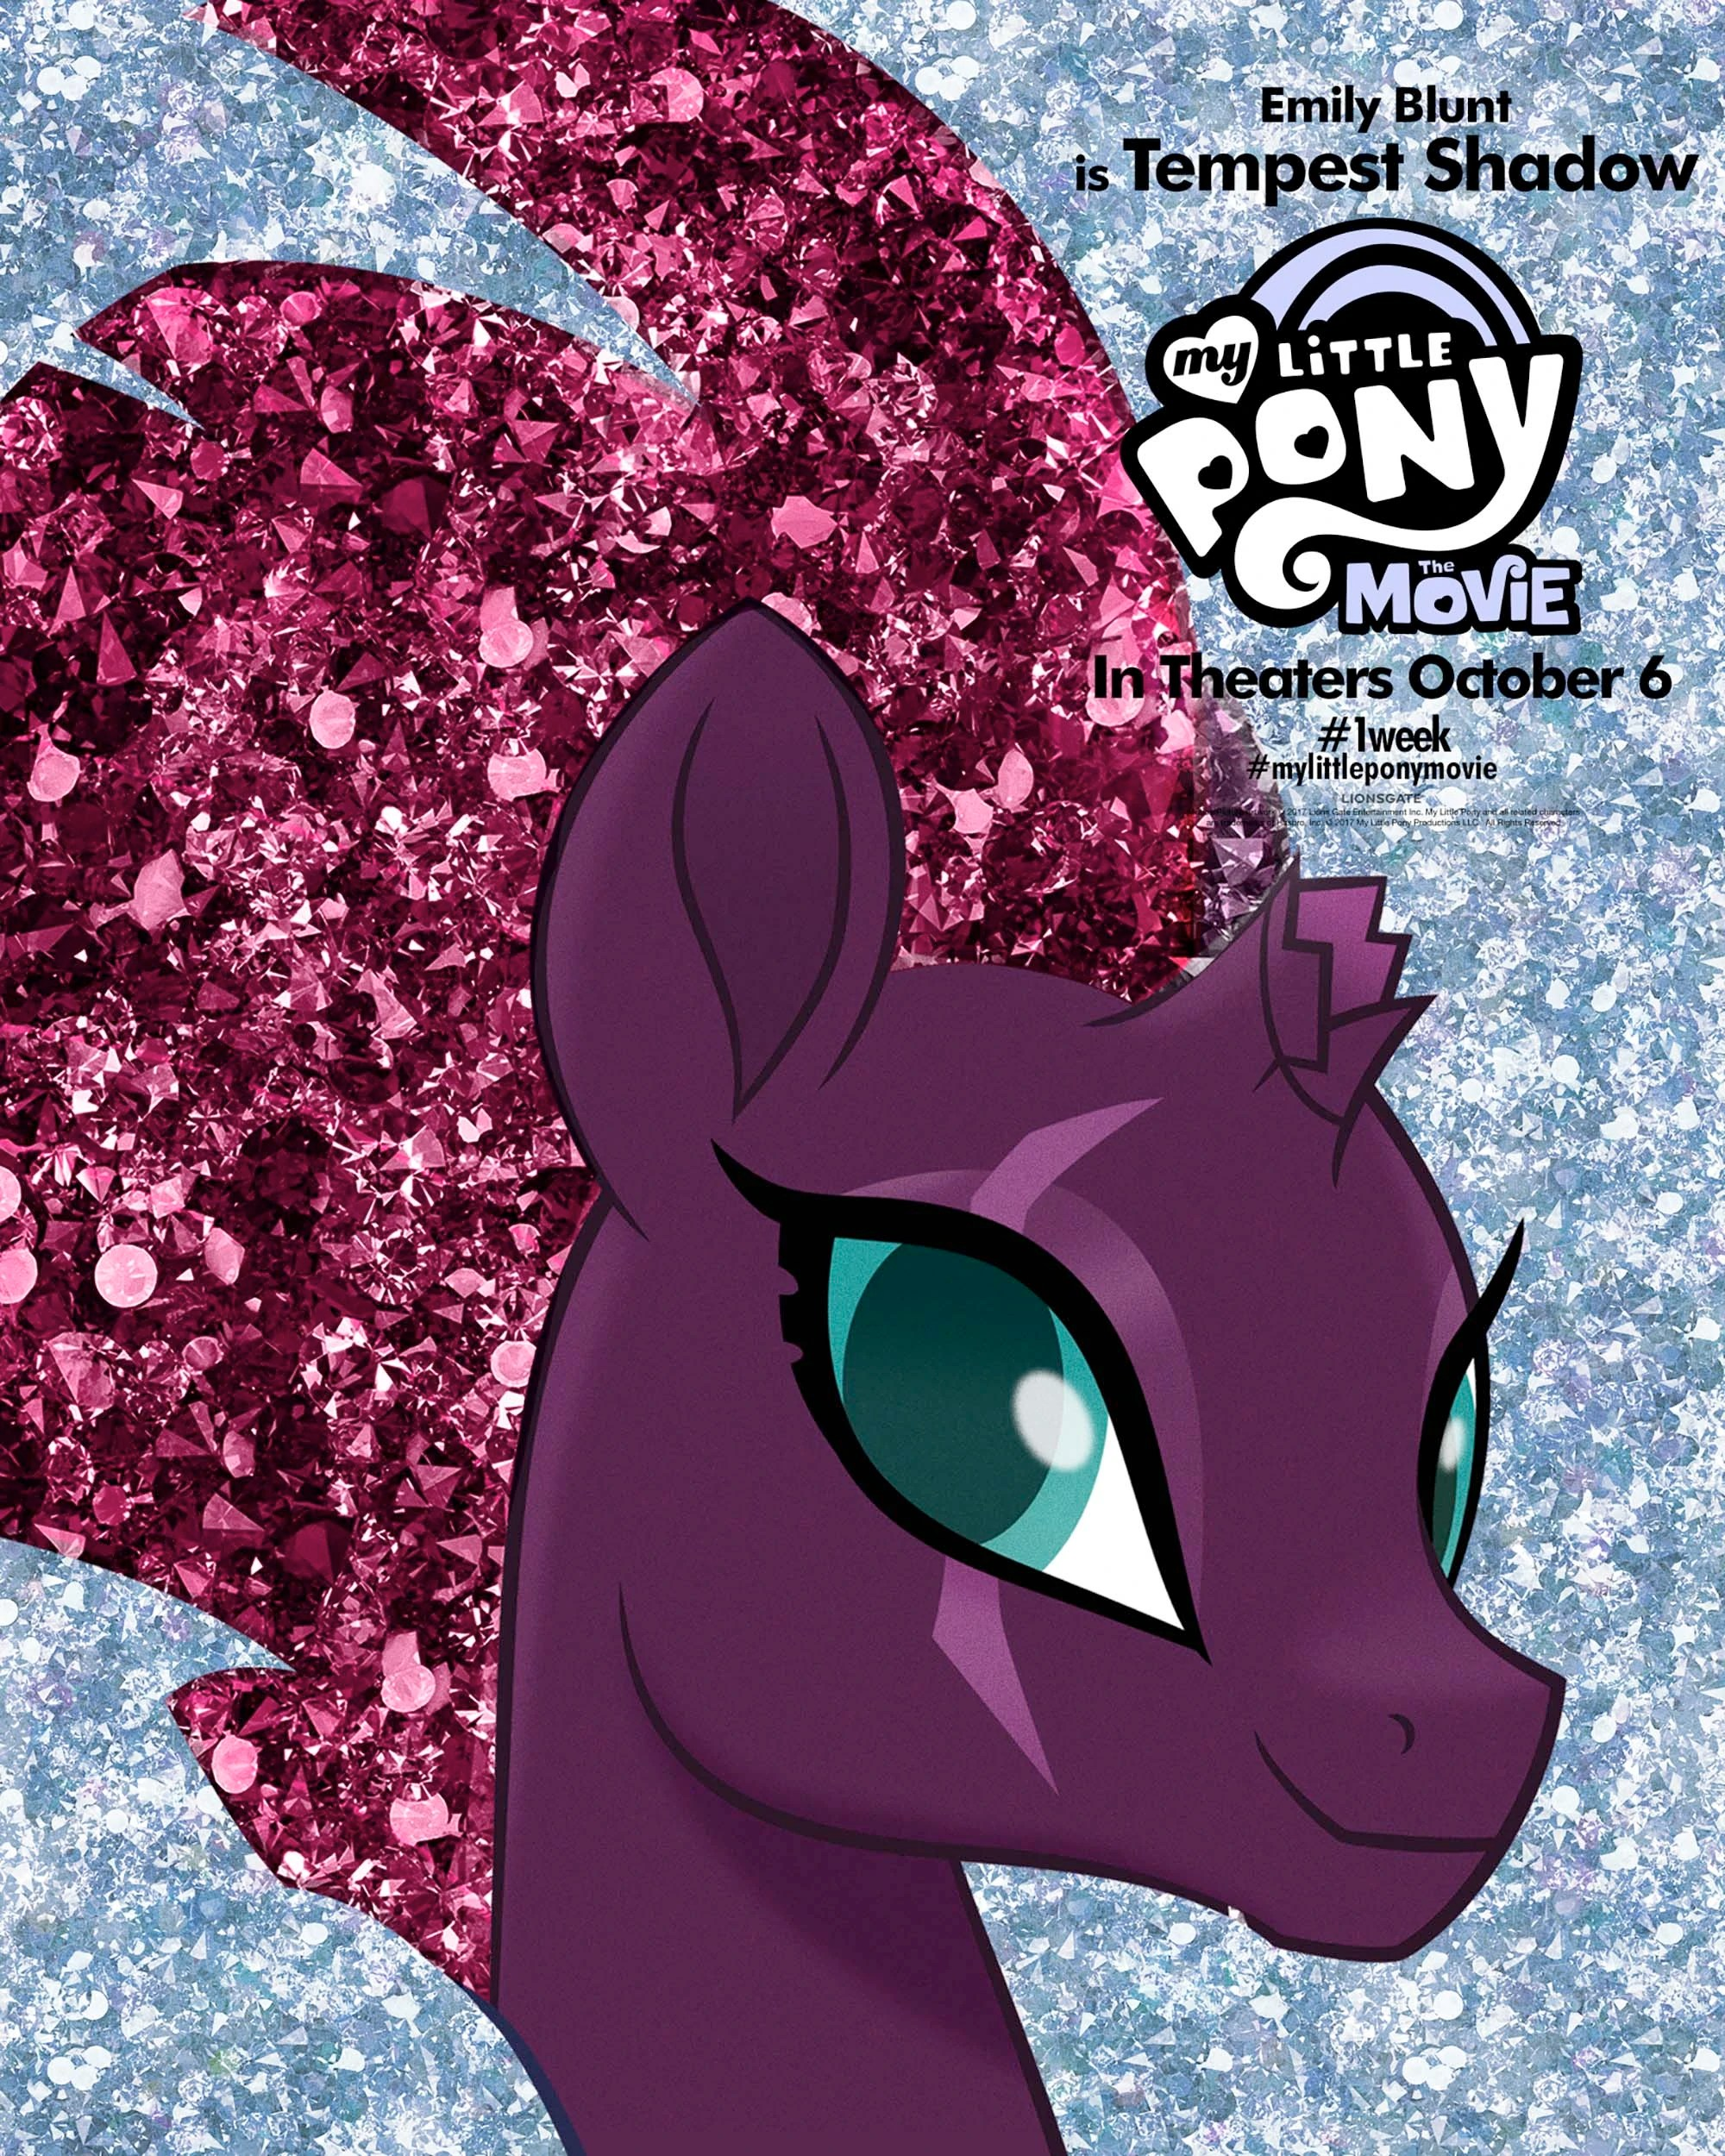 20 Tempest Shadow Equestria Girls Pictures And Ideas On Meta Networks